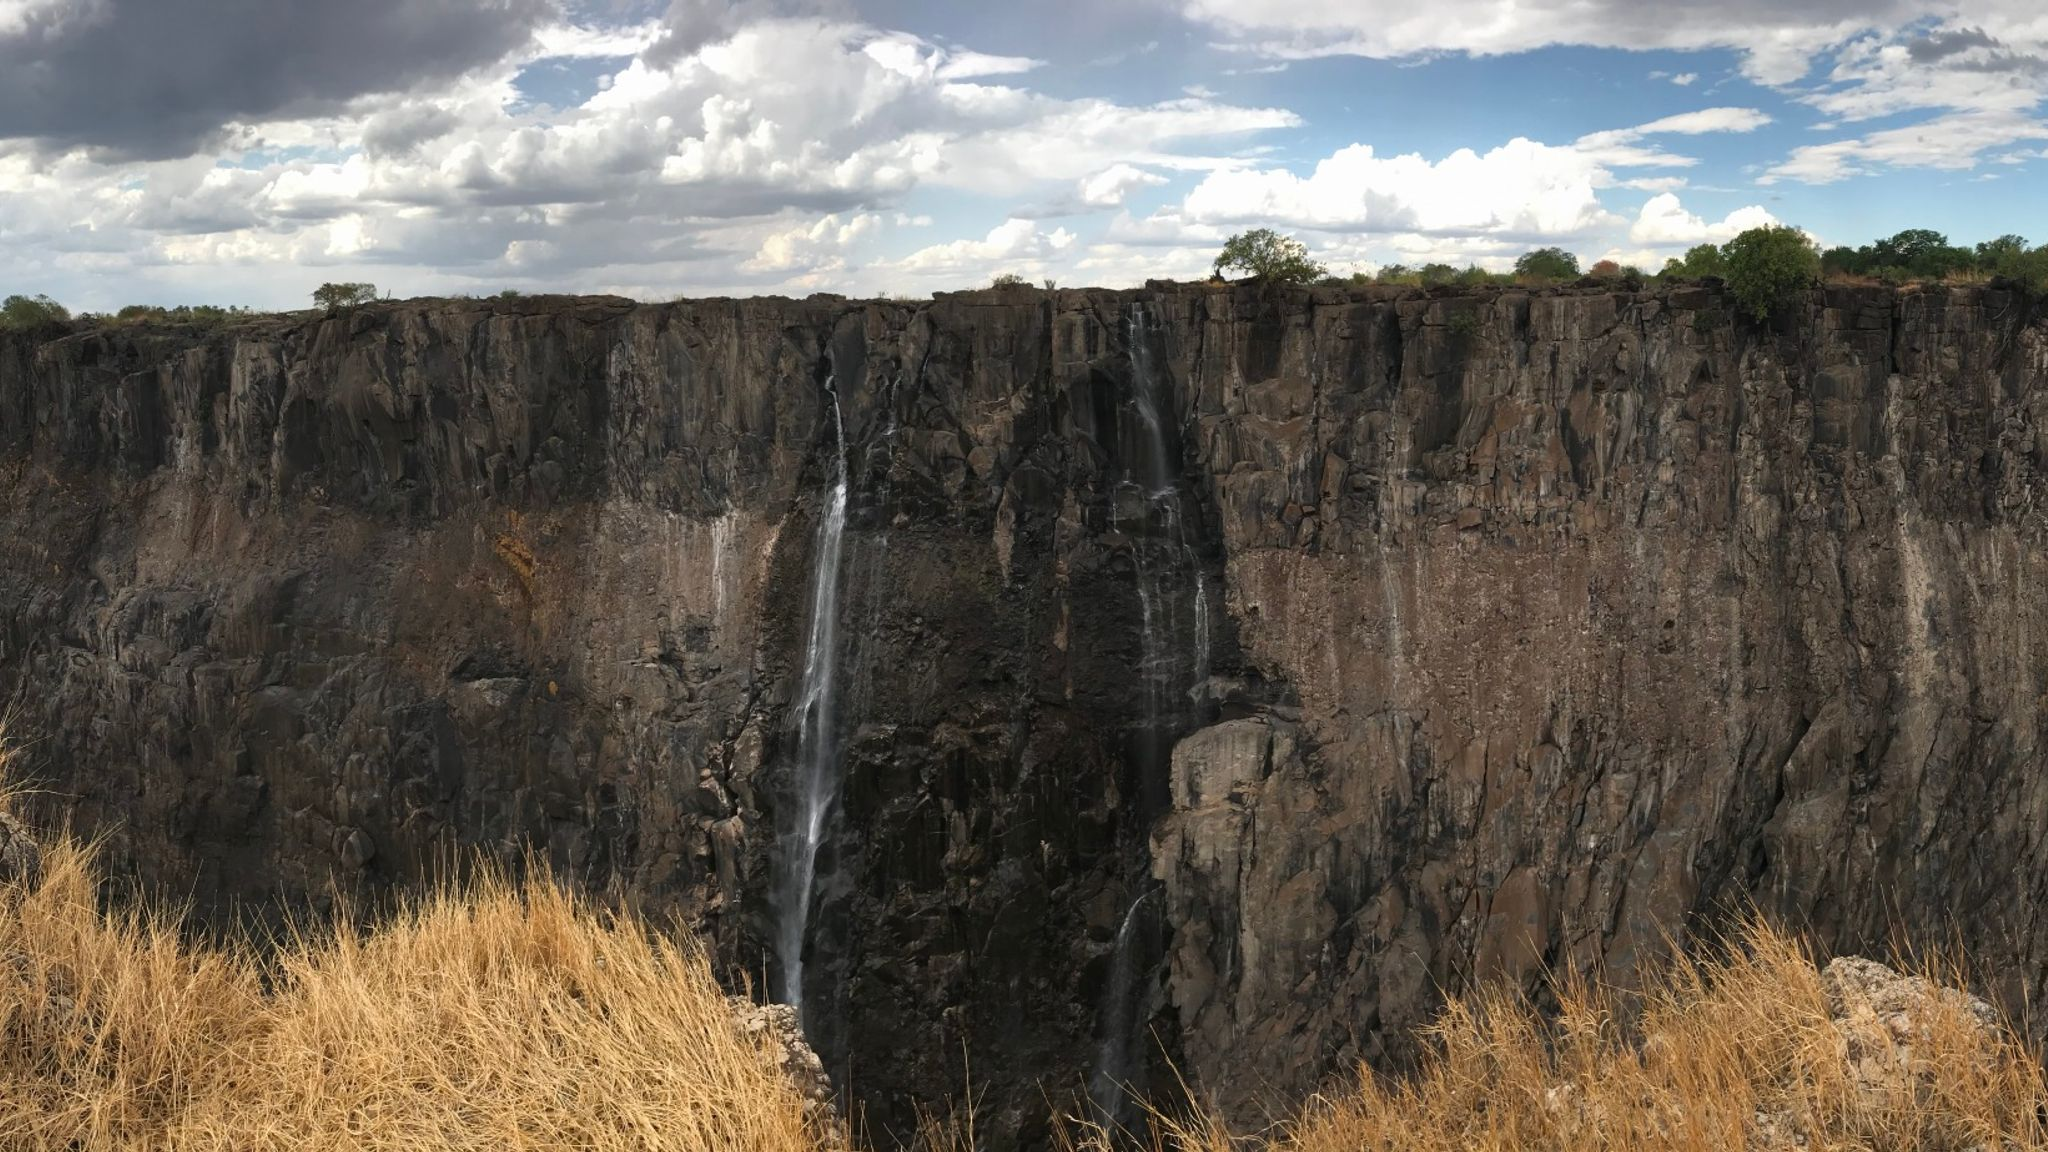 Climate Change Drought Cuts Victoria Falls To Lowest Level